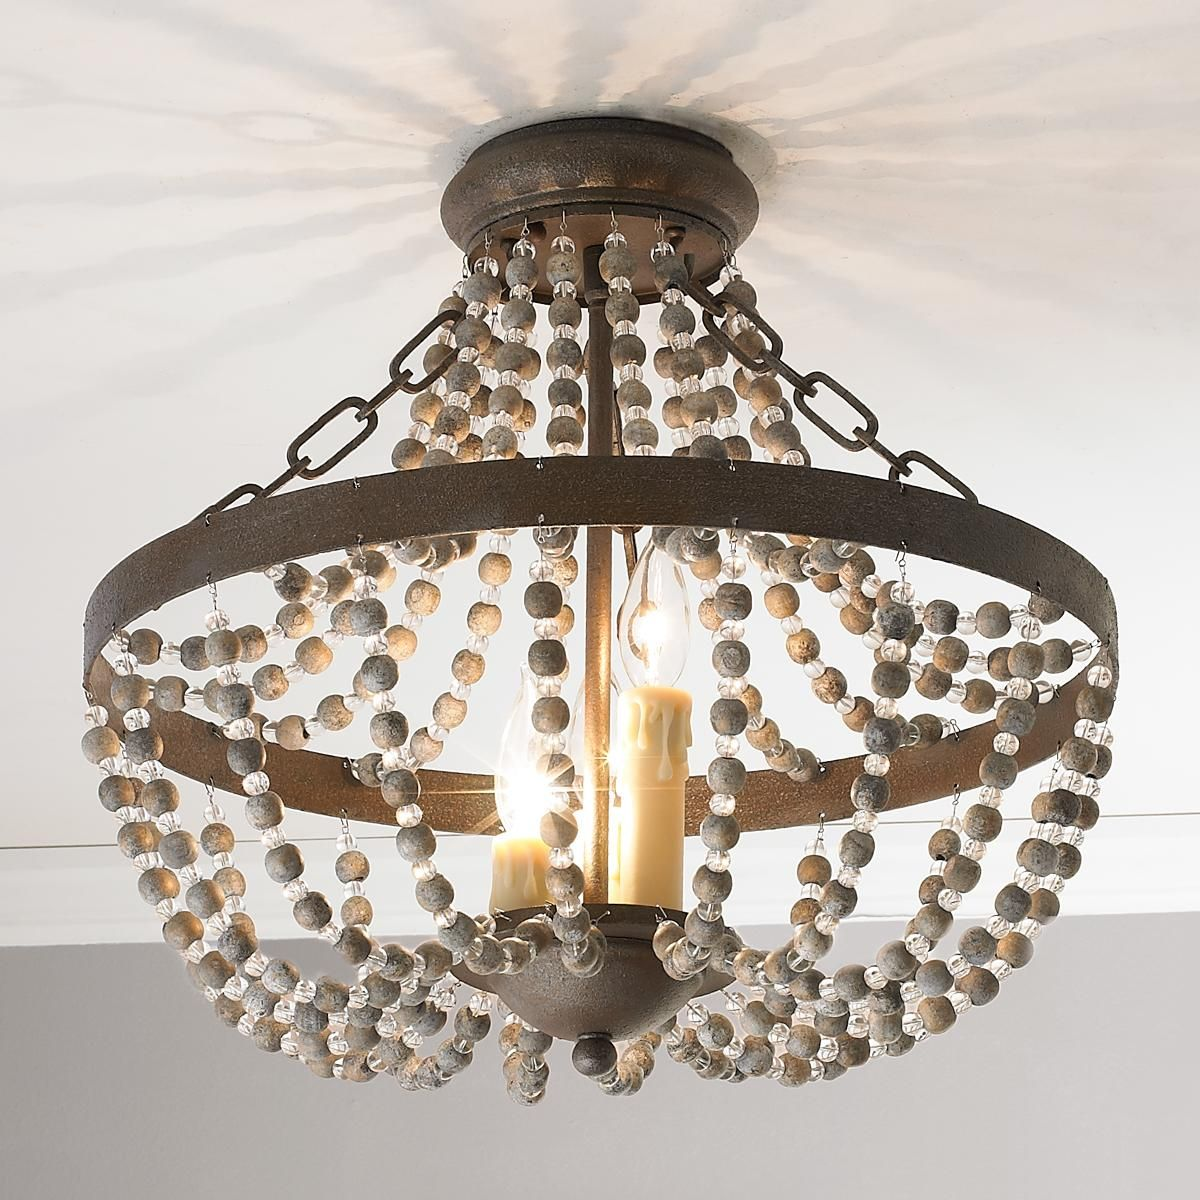 Rustic french country ceiling light rustic french country rustic french country ceiling light arubaitofo Image collections